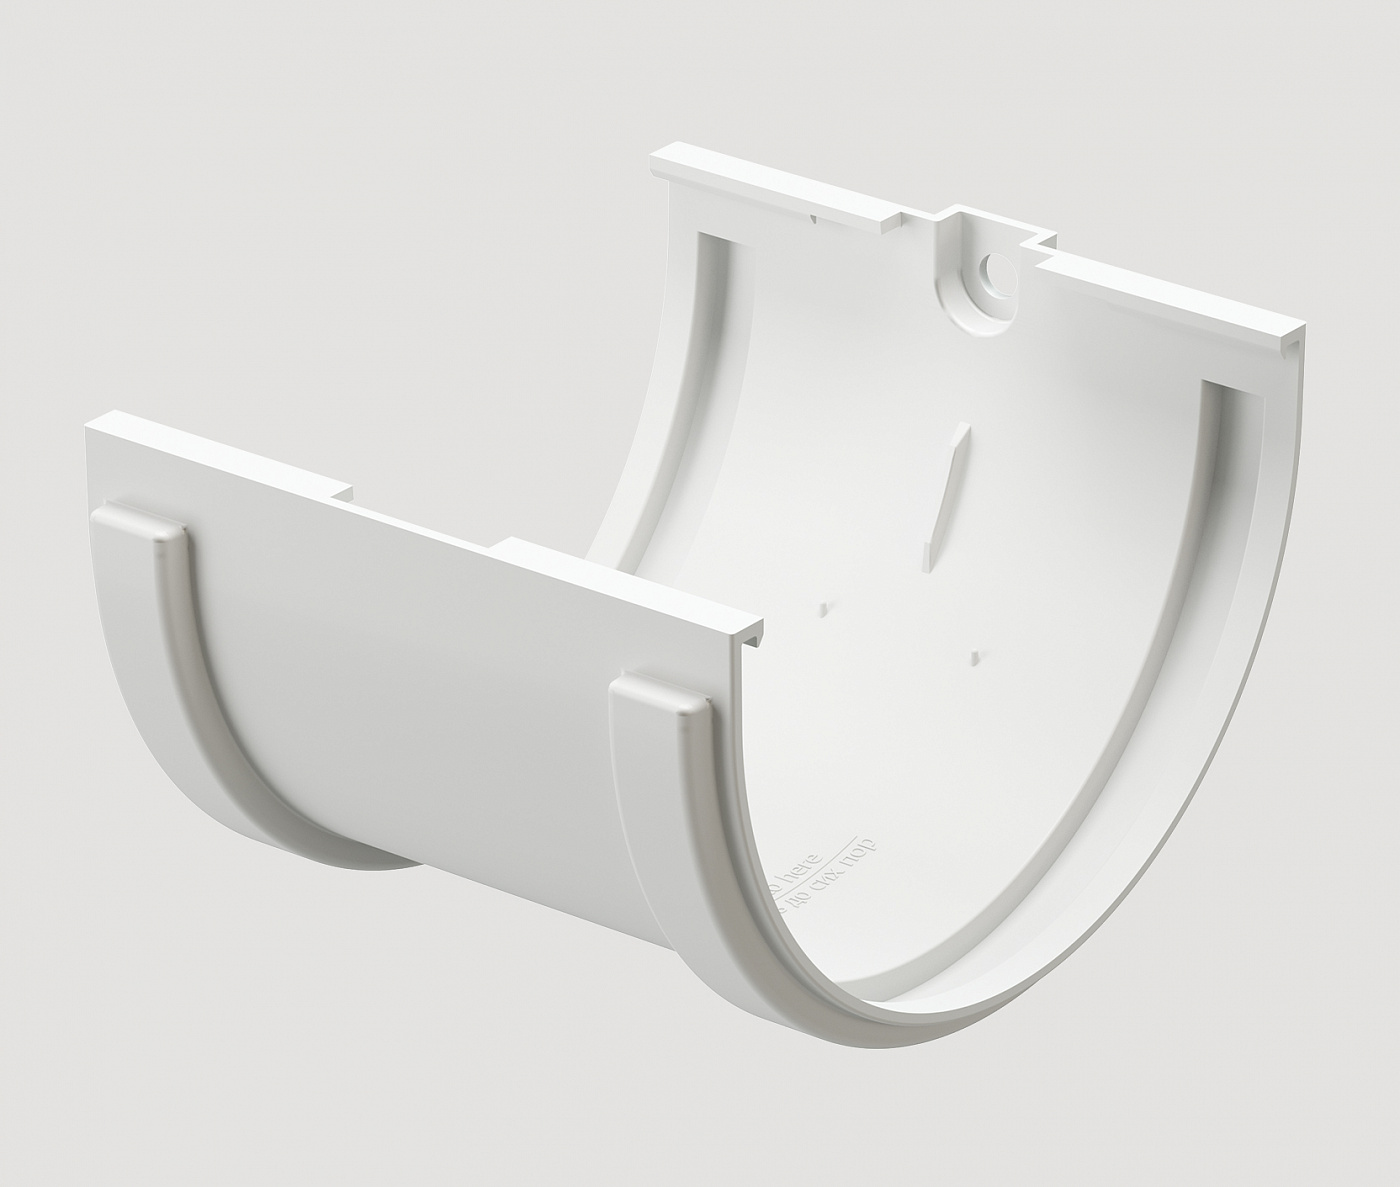 Водостоки - STANDARD SERIES White RAL 9003 - Elements of the drainage system - Gutter connector